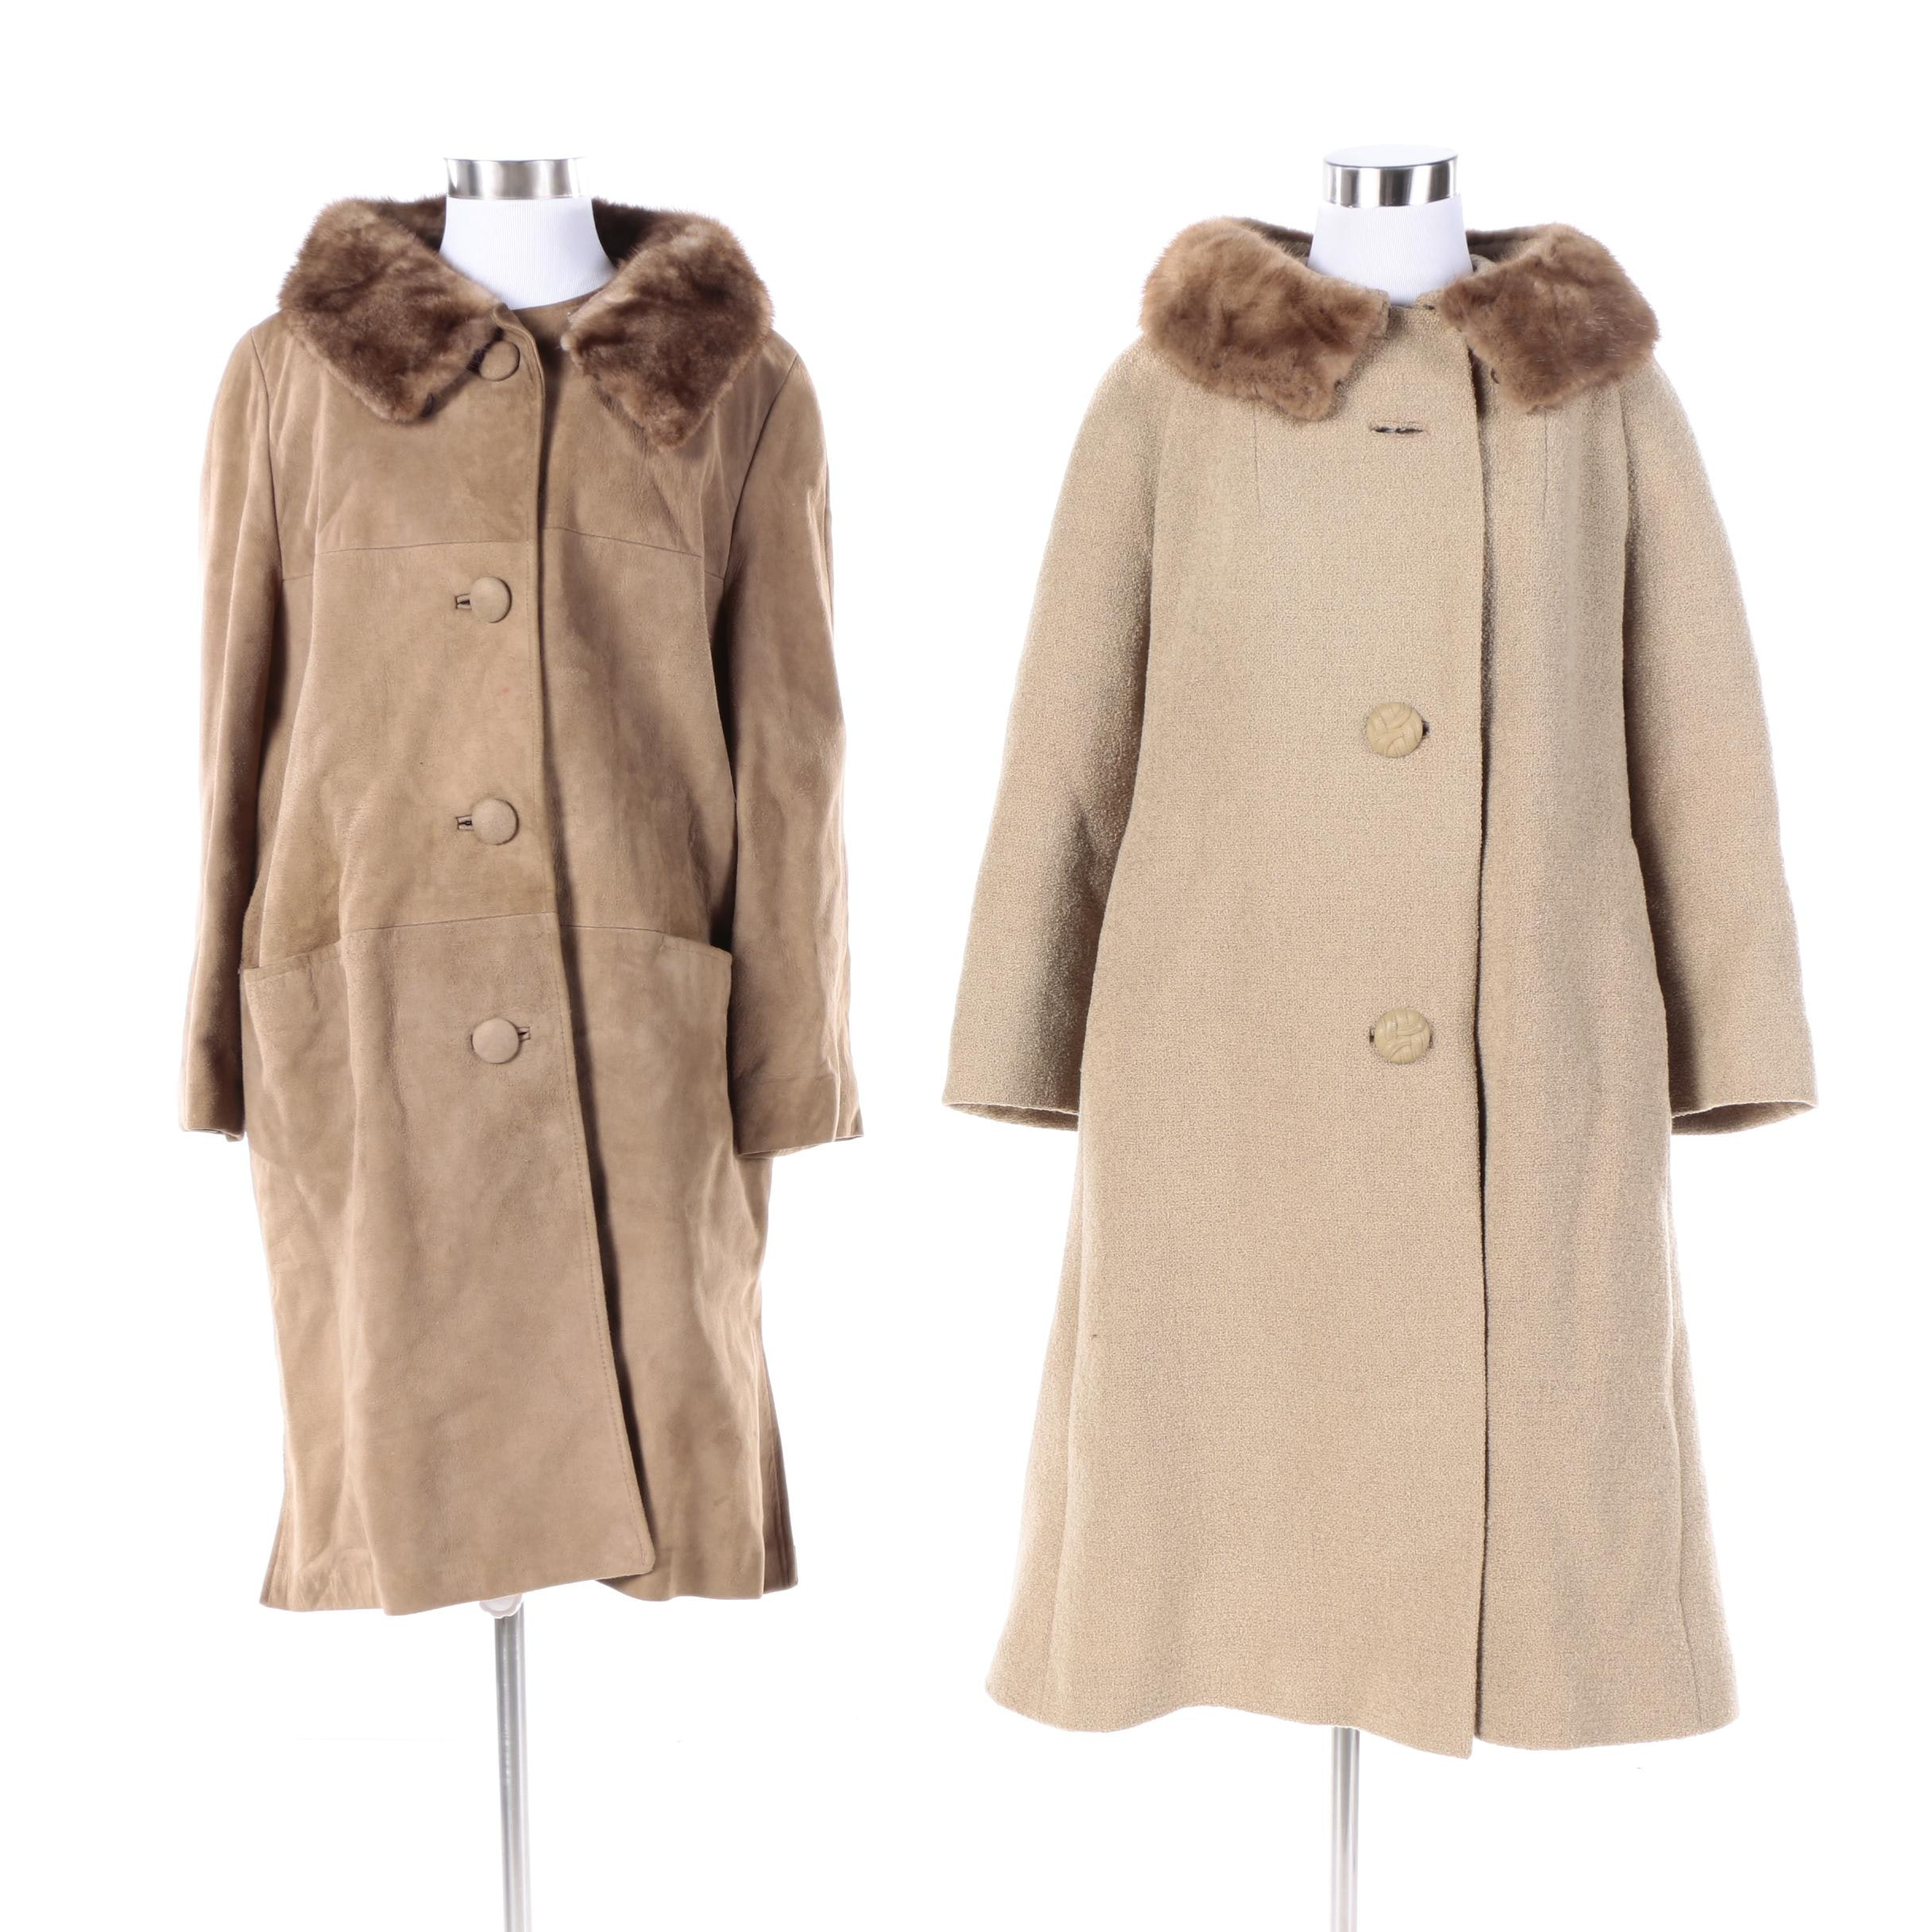 Women's 1960s Vintage Wool and Suede Coats with Mink Fur Collars